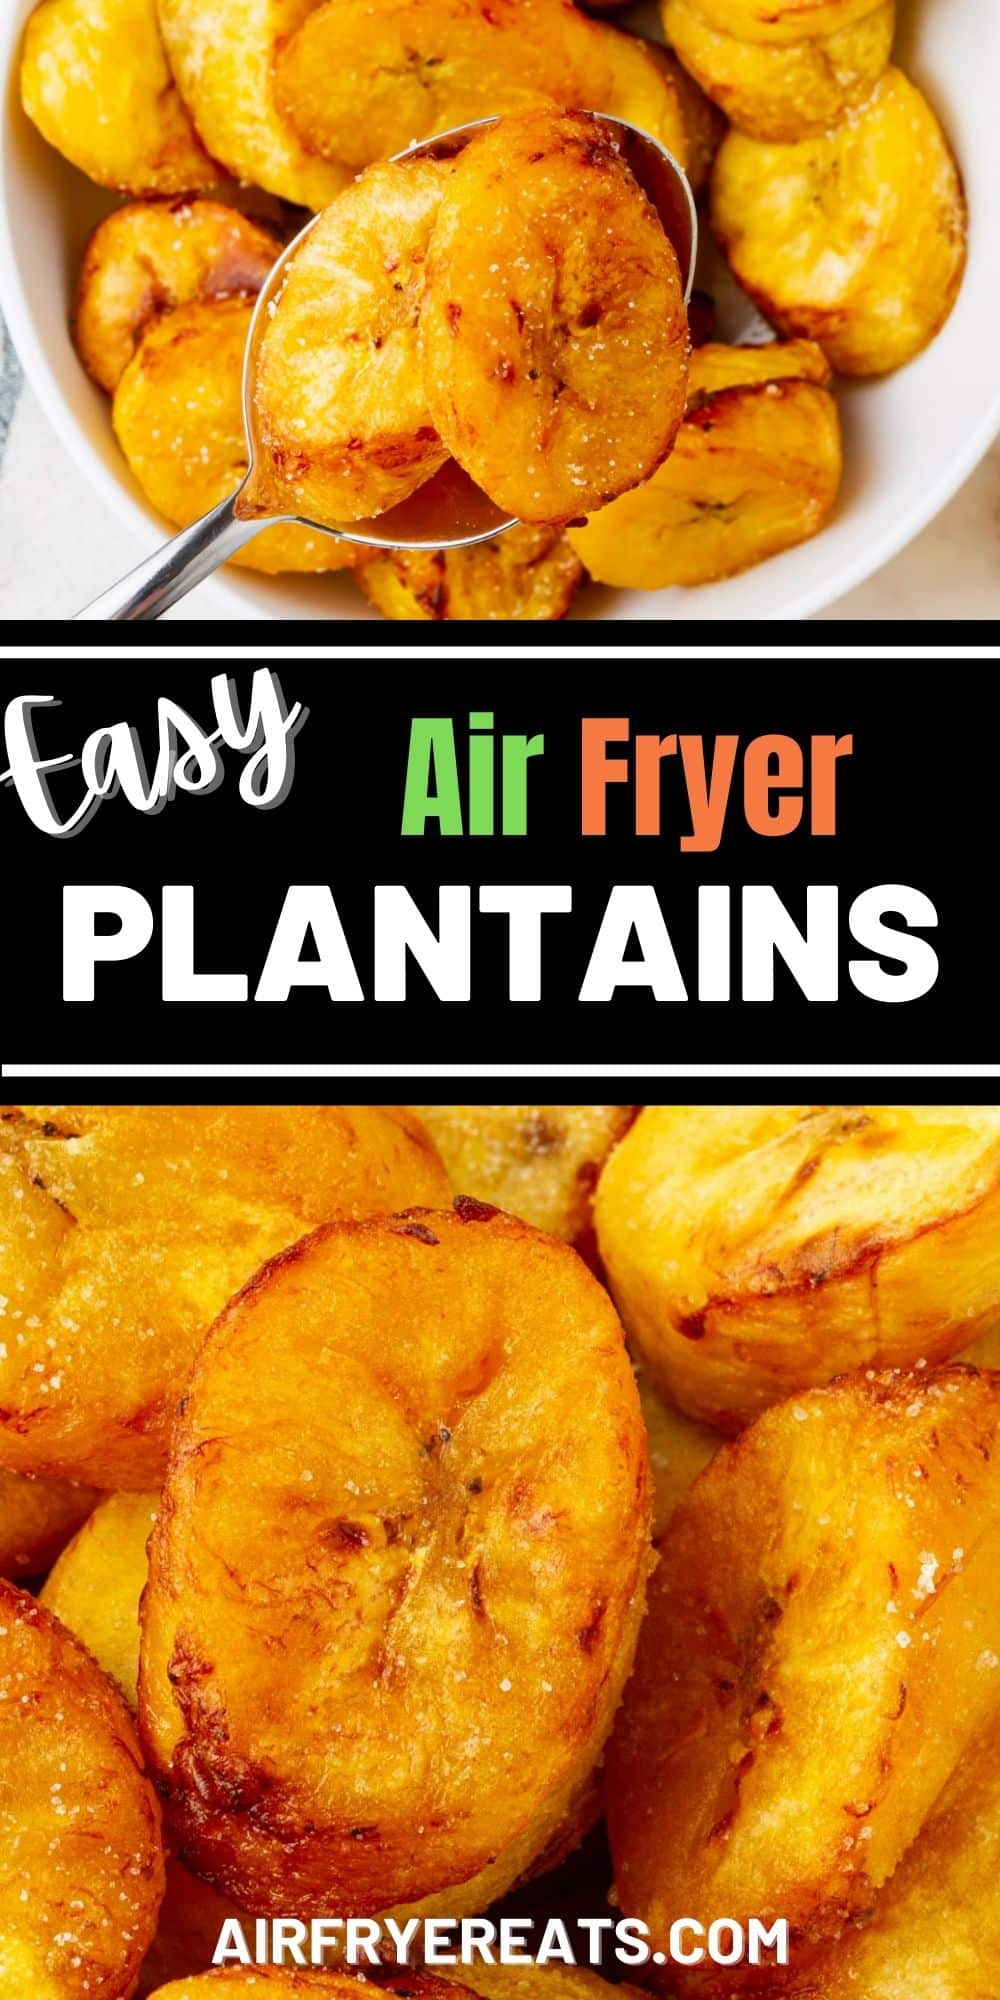 Sweet, ripe, plantains cook up quickly and easily in the air fryer to be crispy on the outside, tender on the inside, and delicious as a snack or side dish. #airfryer #plantains via @vegetarianmamma